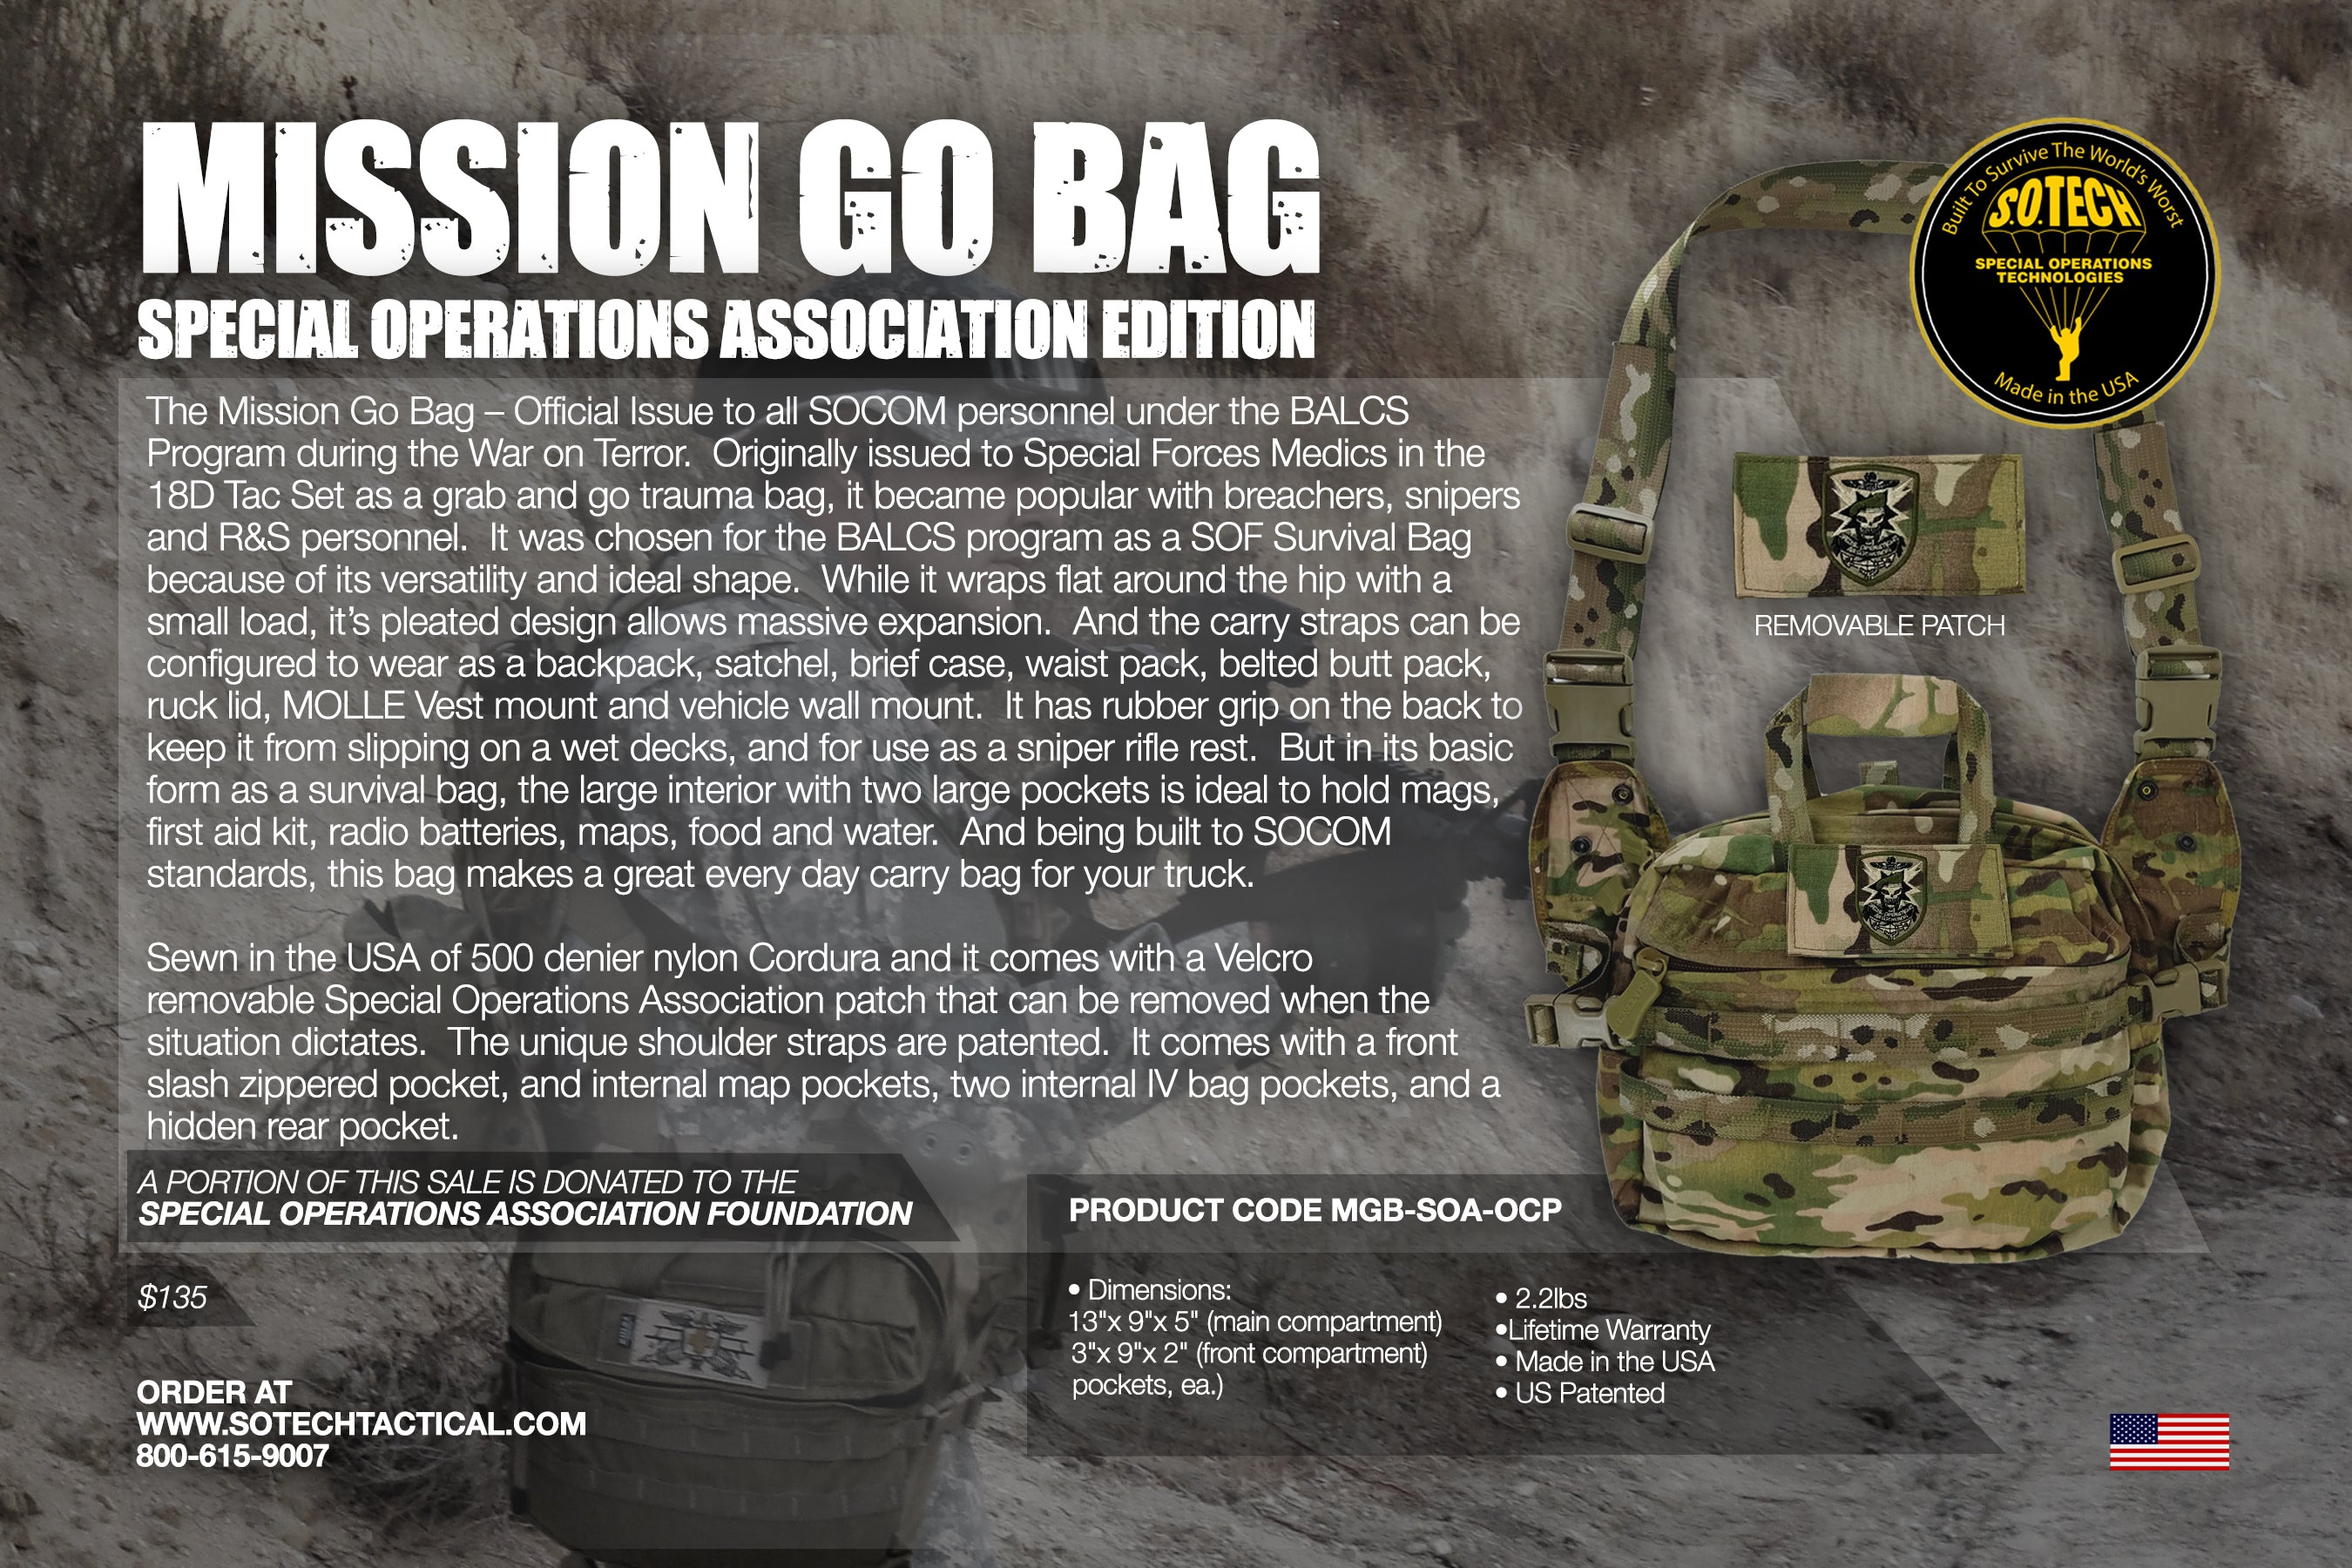 Mission Go Bag A1, Special Operations Association Edition